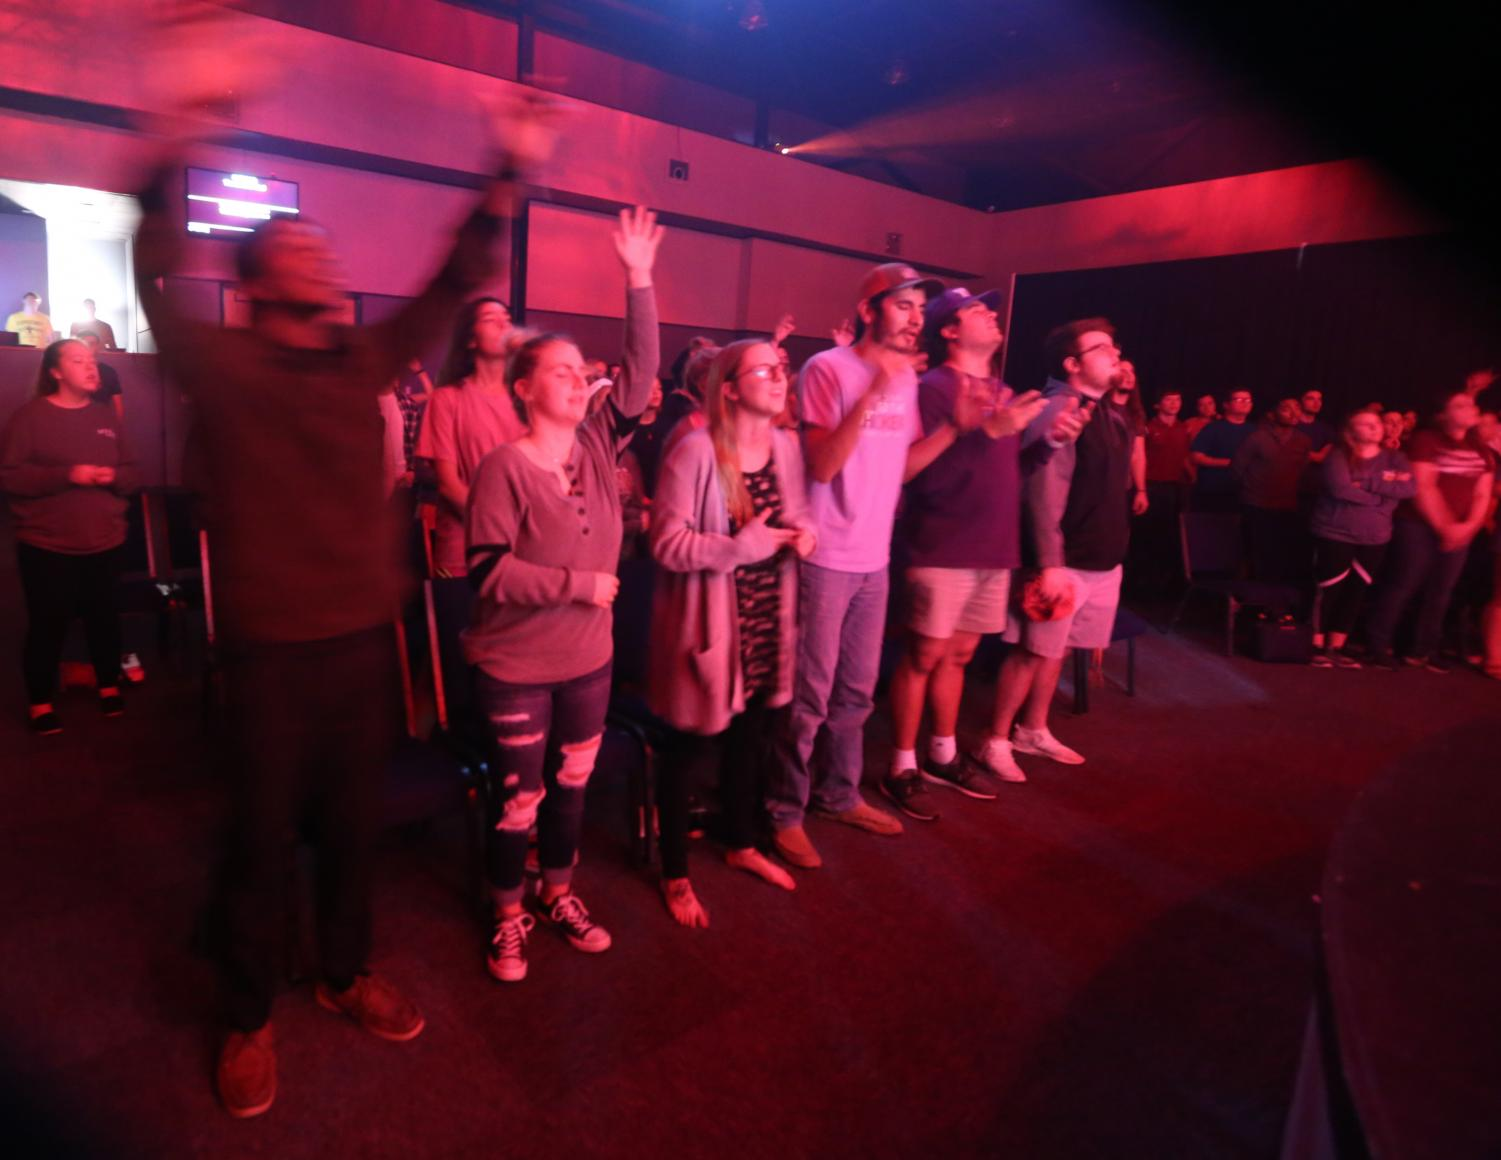 Students worship at The Bridge, a college worship service affiliated with First Baptist Church, Oct. 23, 2018.